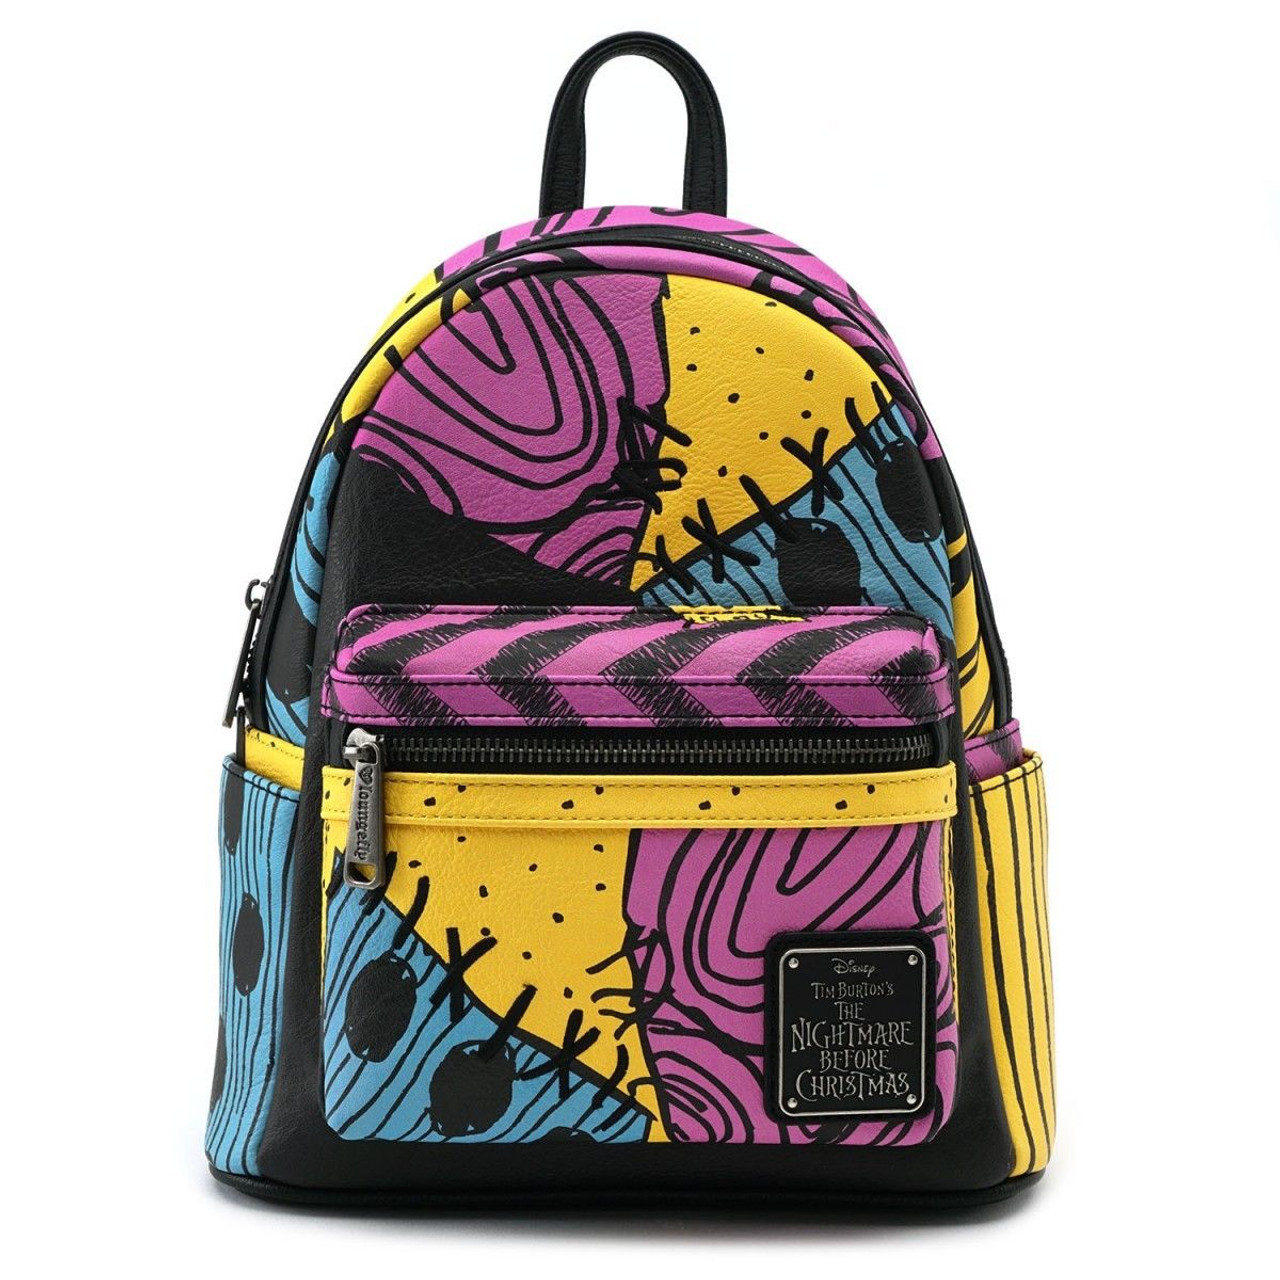 f39c3db9683 Loungefly Disney Nightmare Before Christmas Sally Dress Mini Backpack  WDBK0527